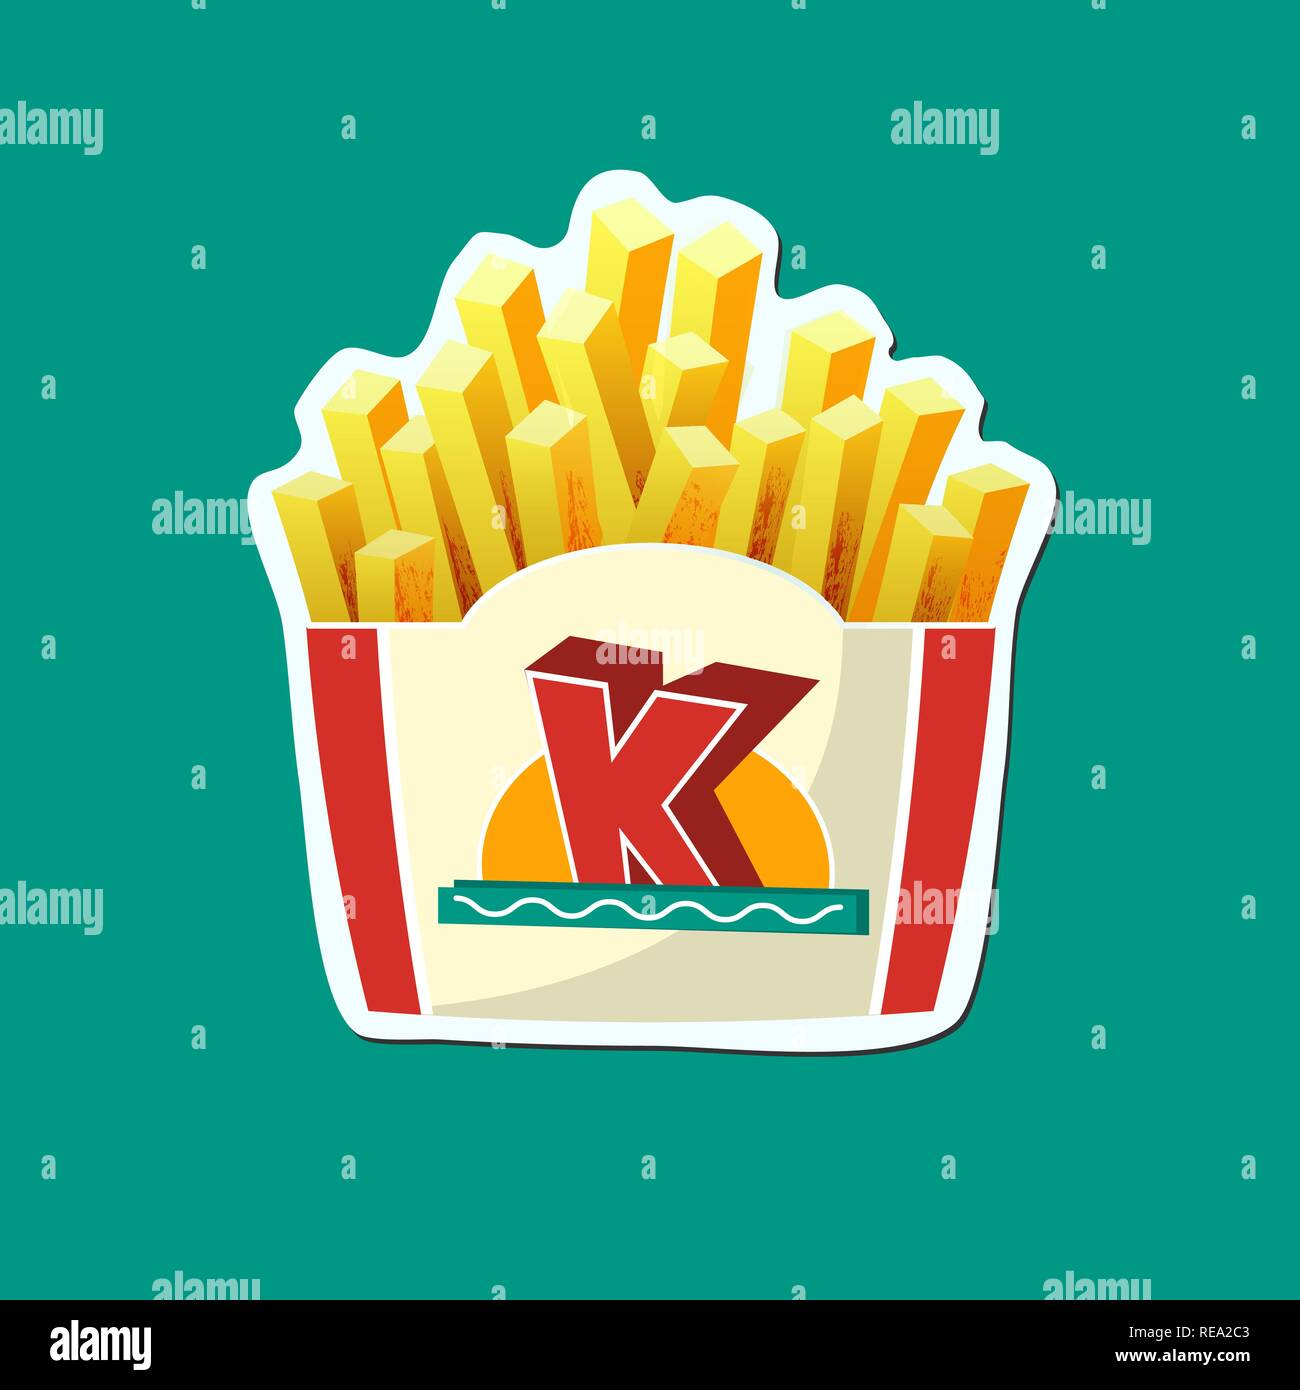 French Fries potato fast food in Carton Package Box Sticker on Green background - Stock Vector